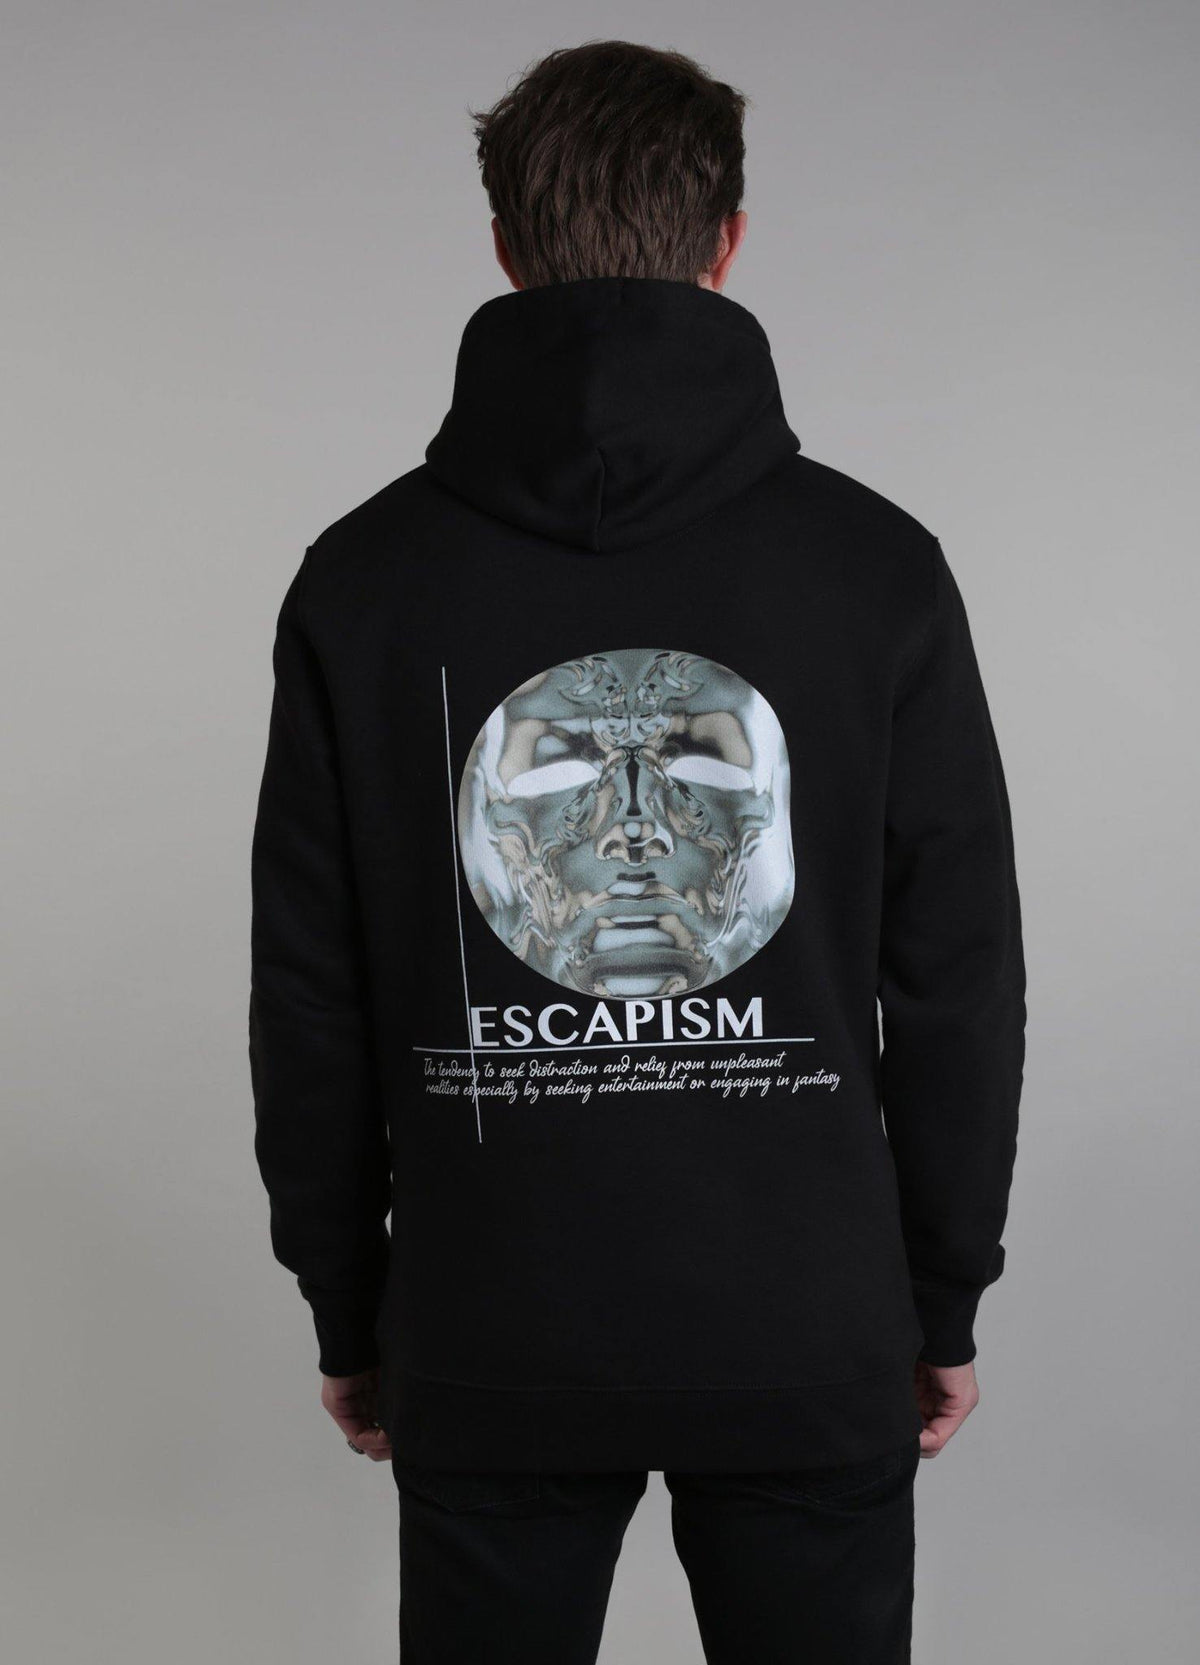 Escapism Hooded Sweatshirt - ALISTAIR GREY